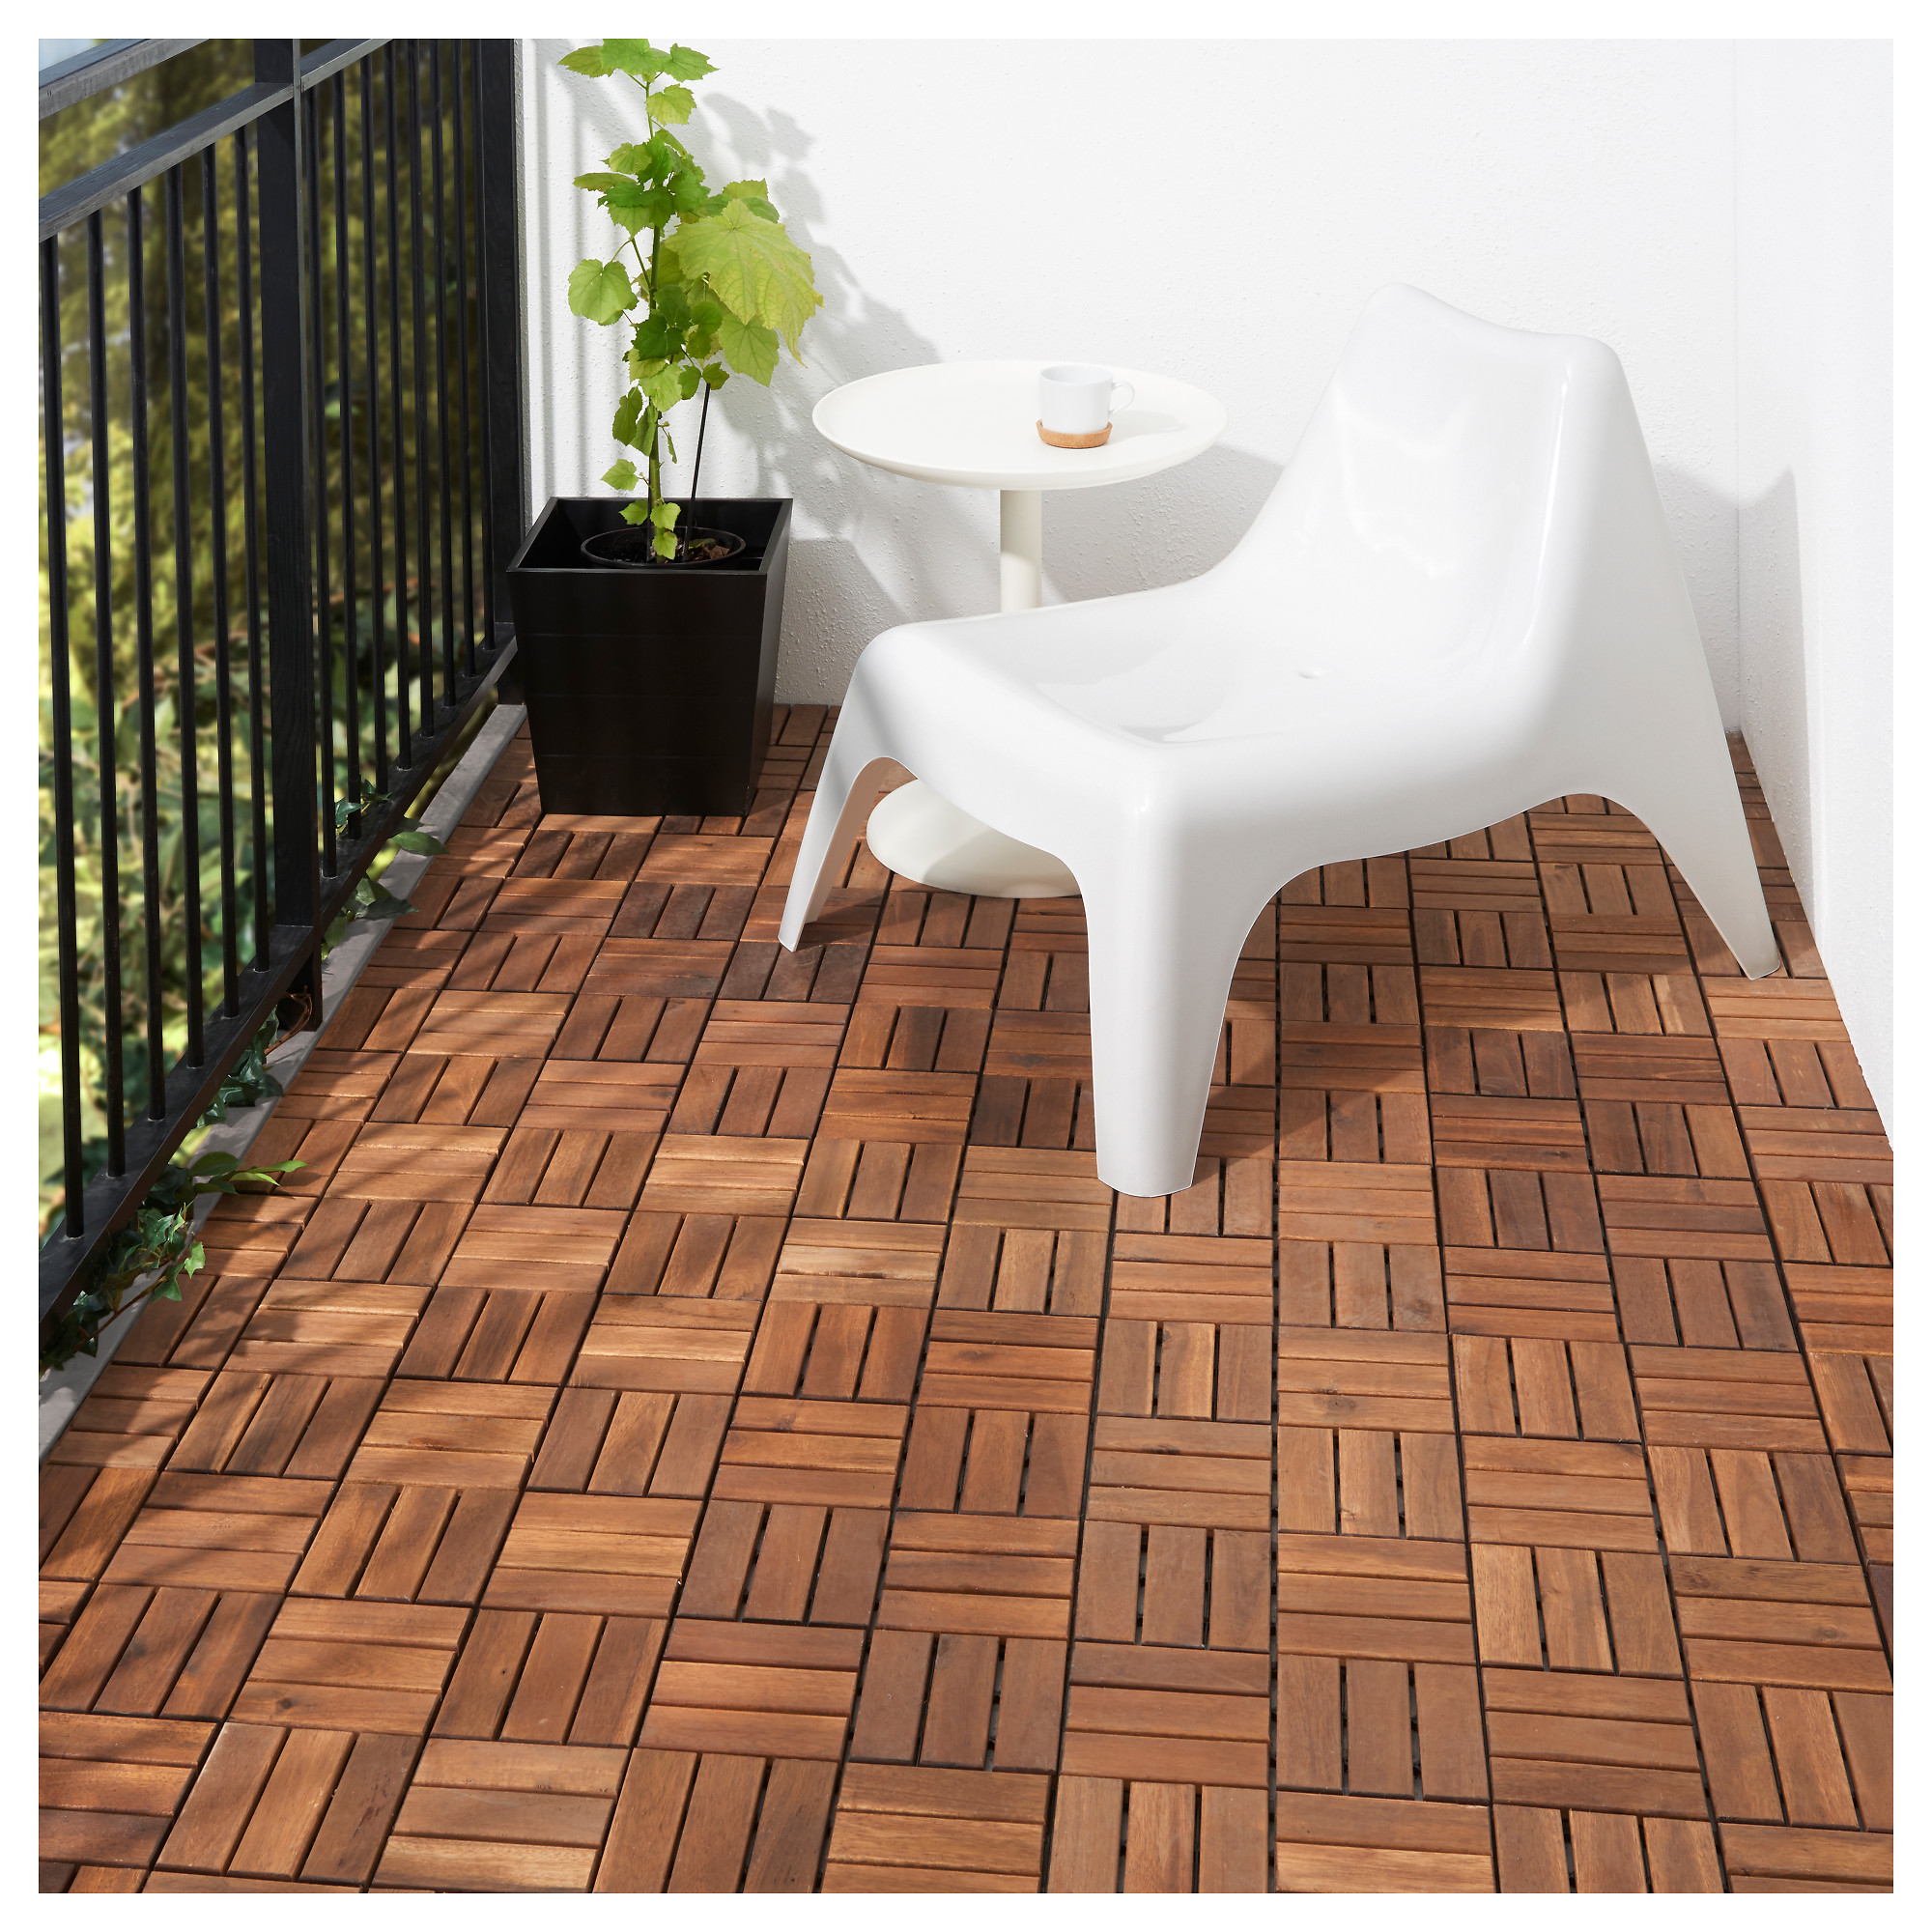 Decking outdoor flooring ikea runnen floor decking outdoor brown stained length 11 34 width baanklon Images